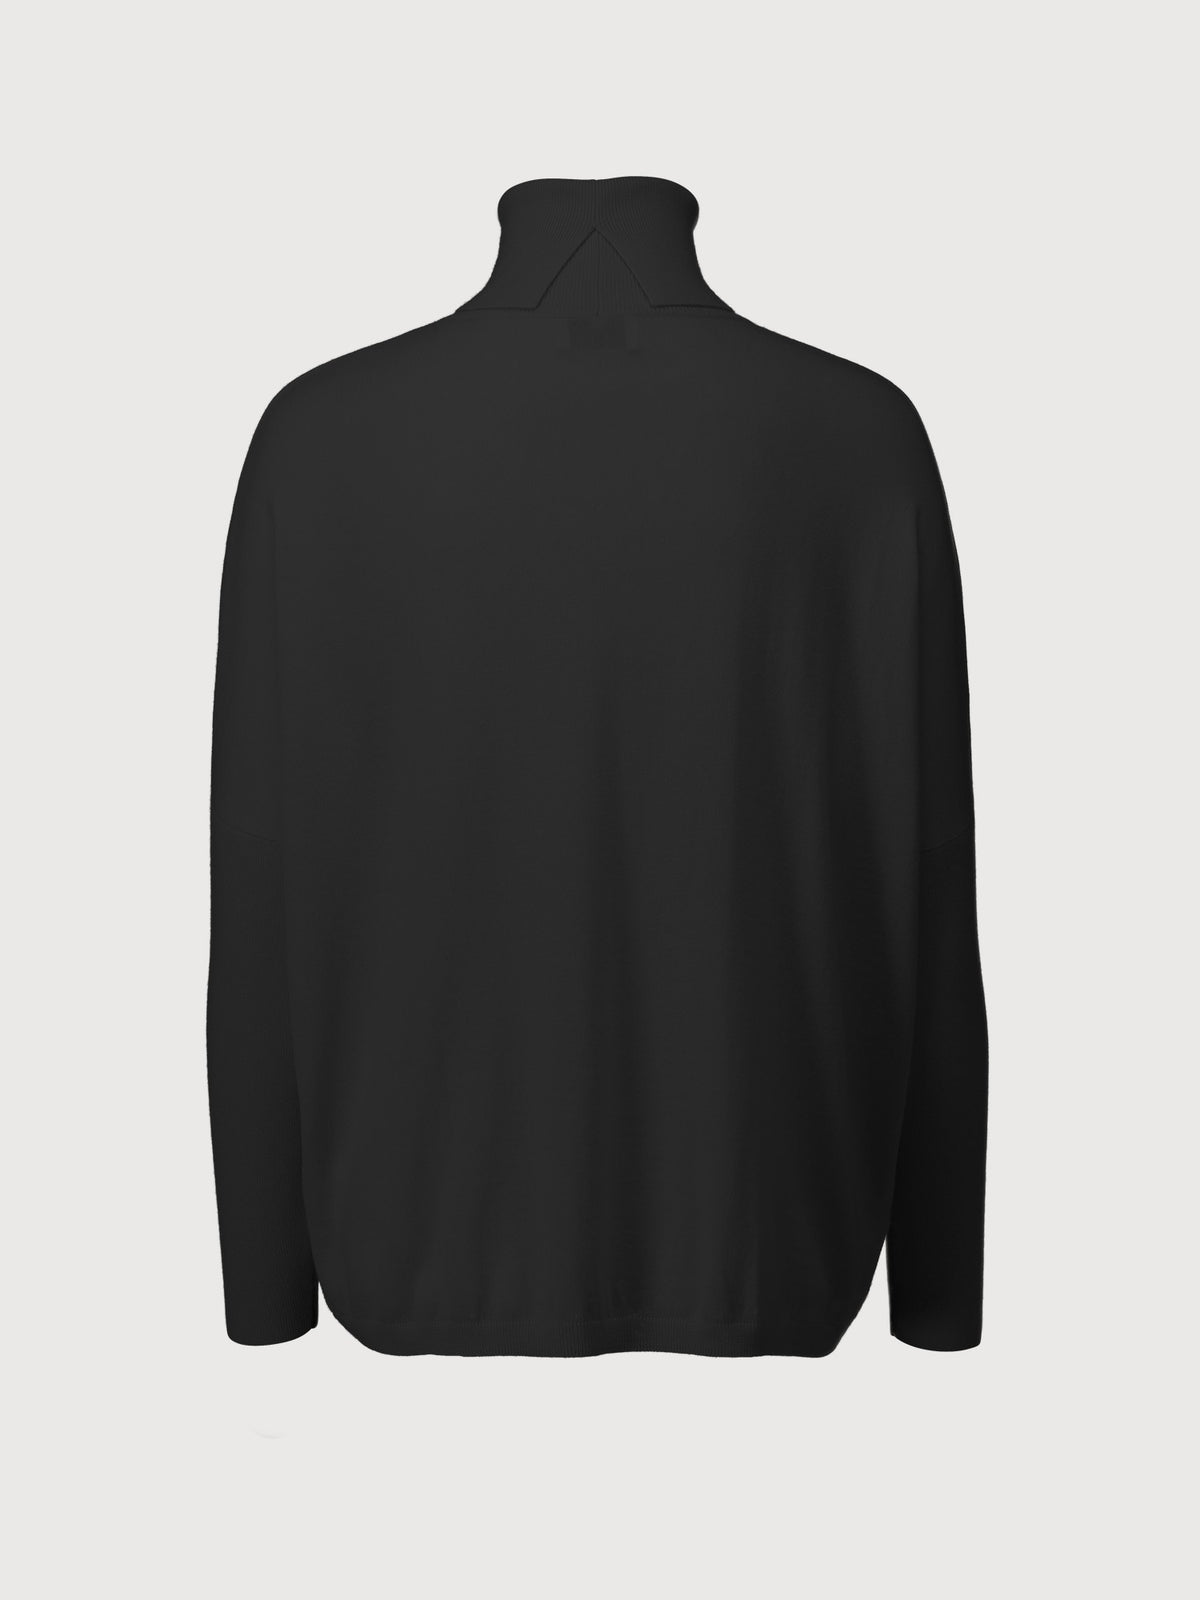 Roll neck Sweater | Black